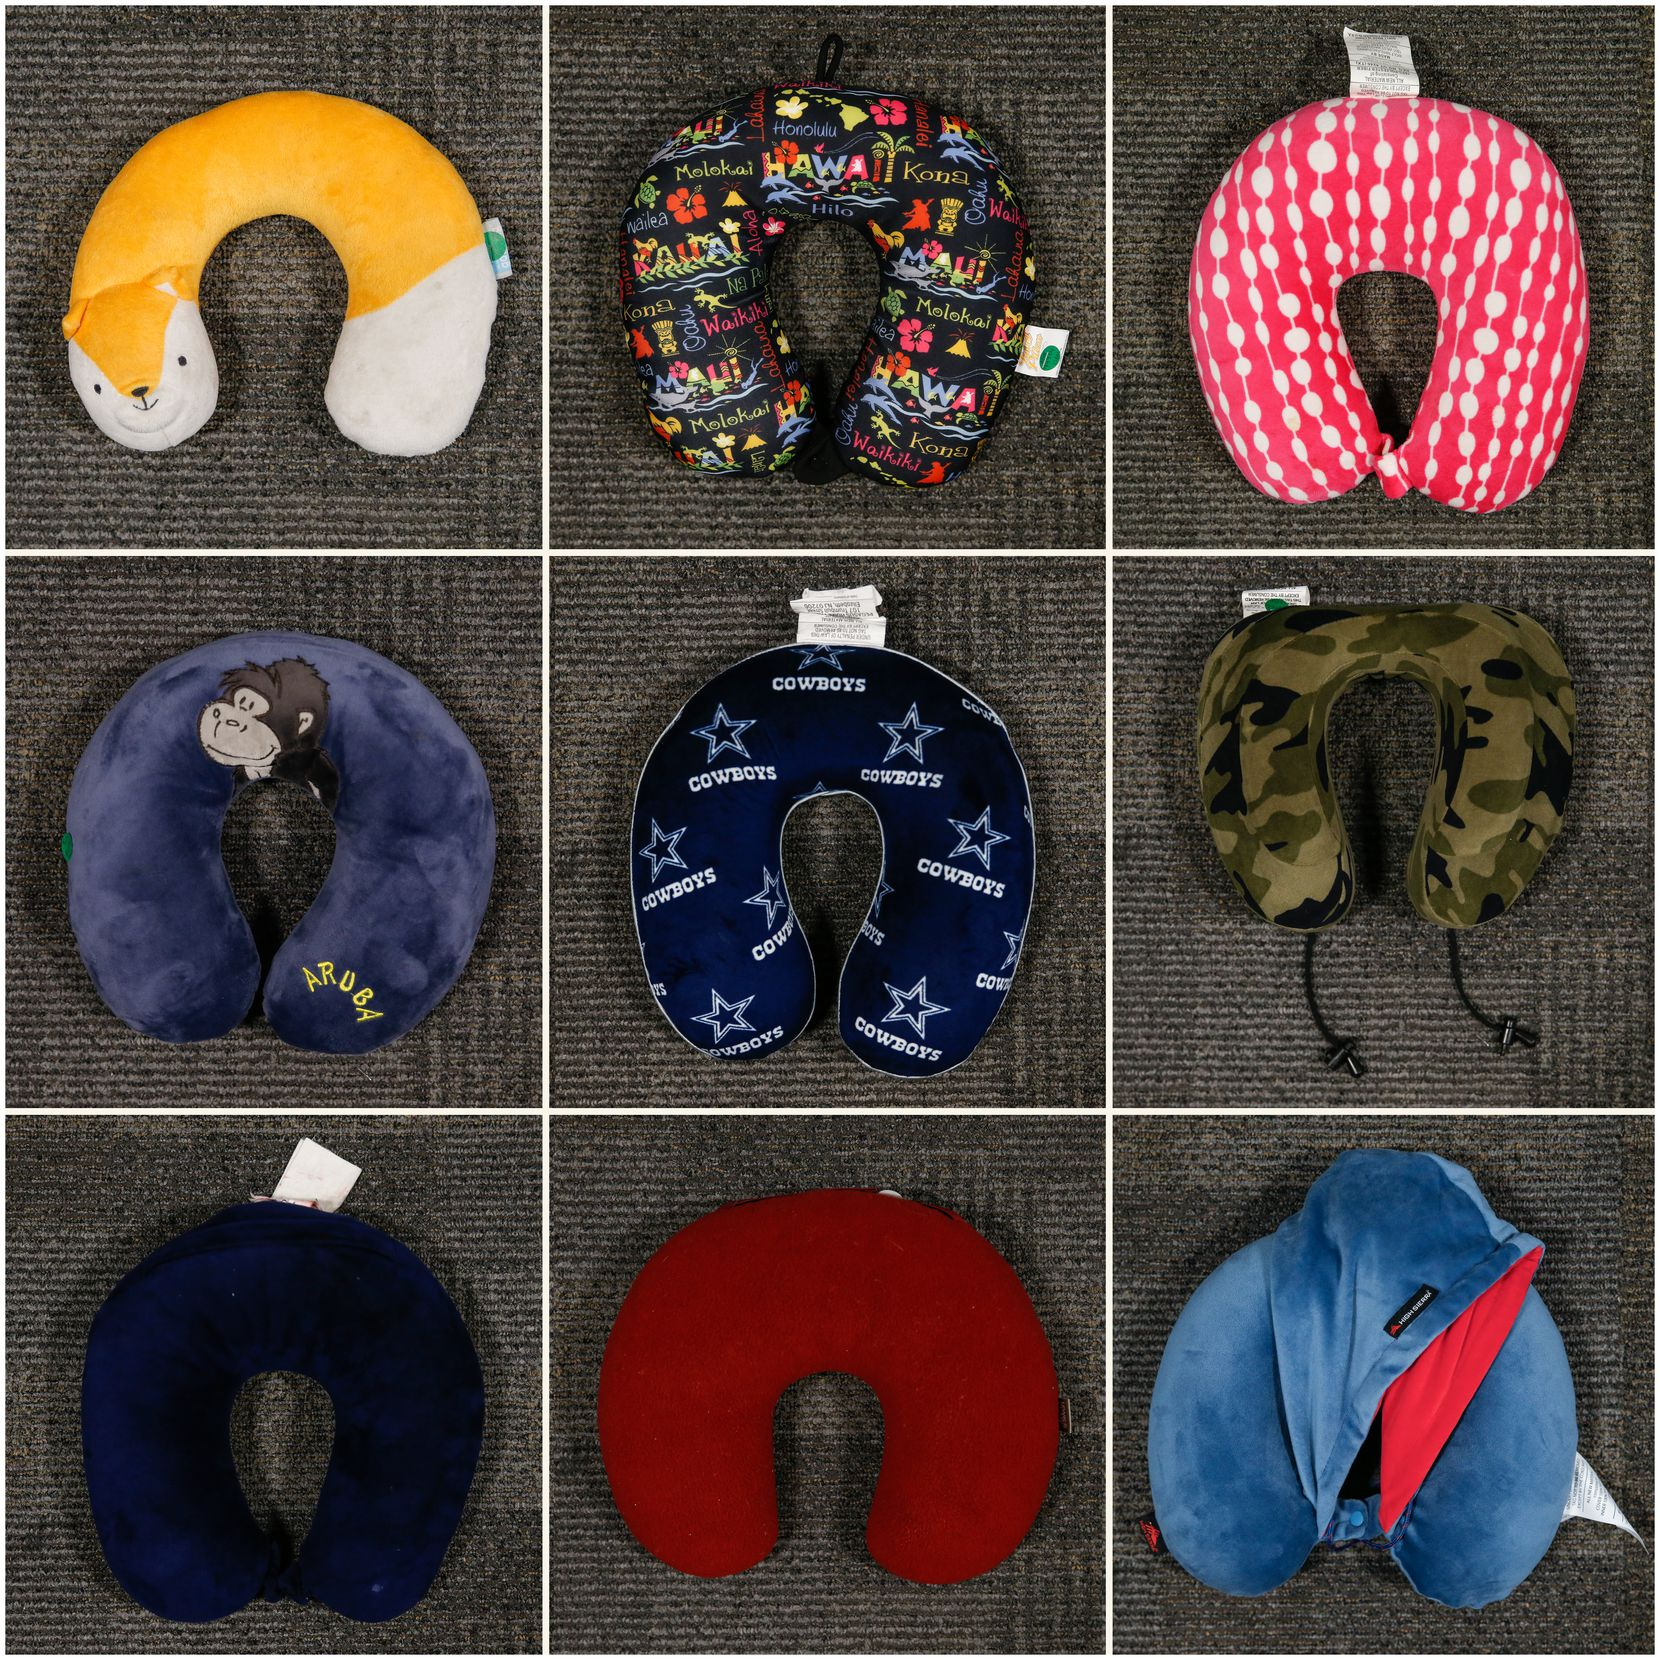 Neck pillows in many colors have turned up at Dallas Love Field's lost and found area.